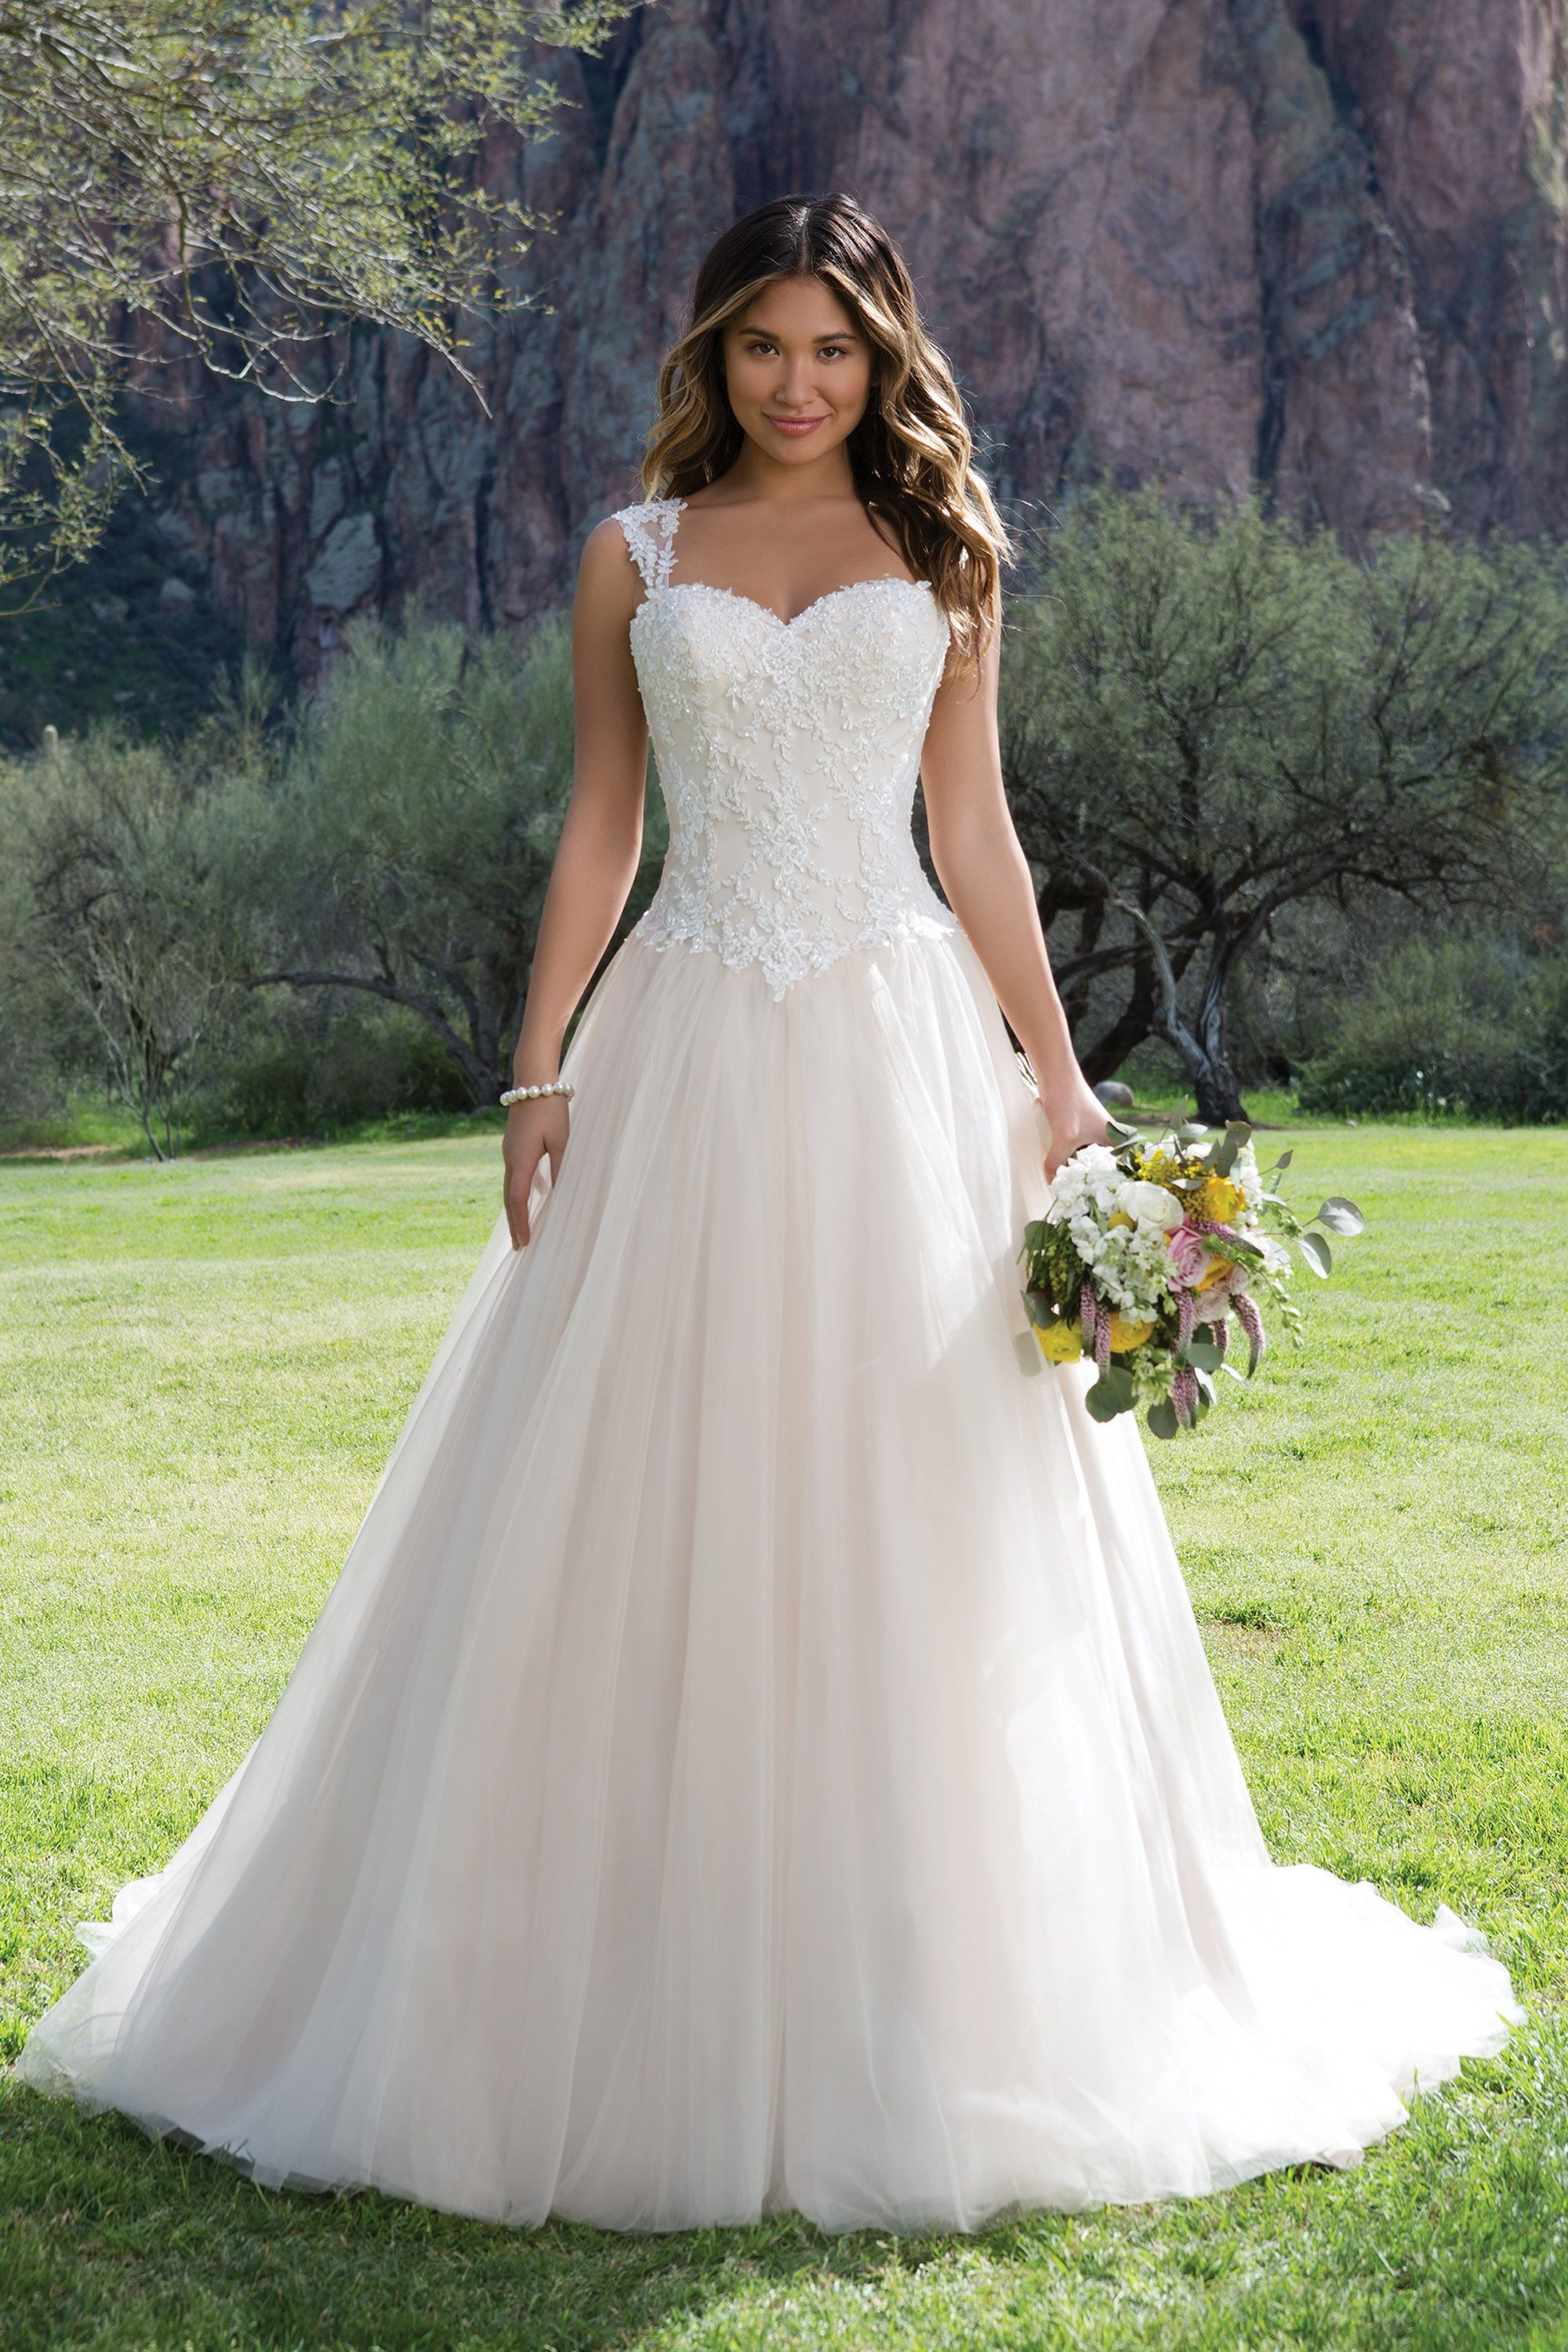 Sweetheart Gowns 1141 Ivory Size 22 Sweetheart Neckline Ball Gown